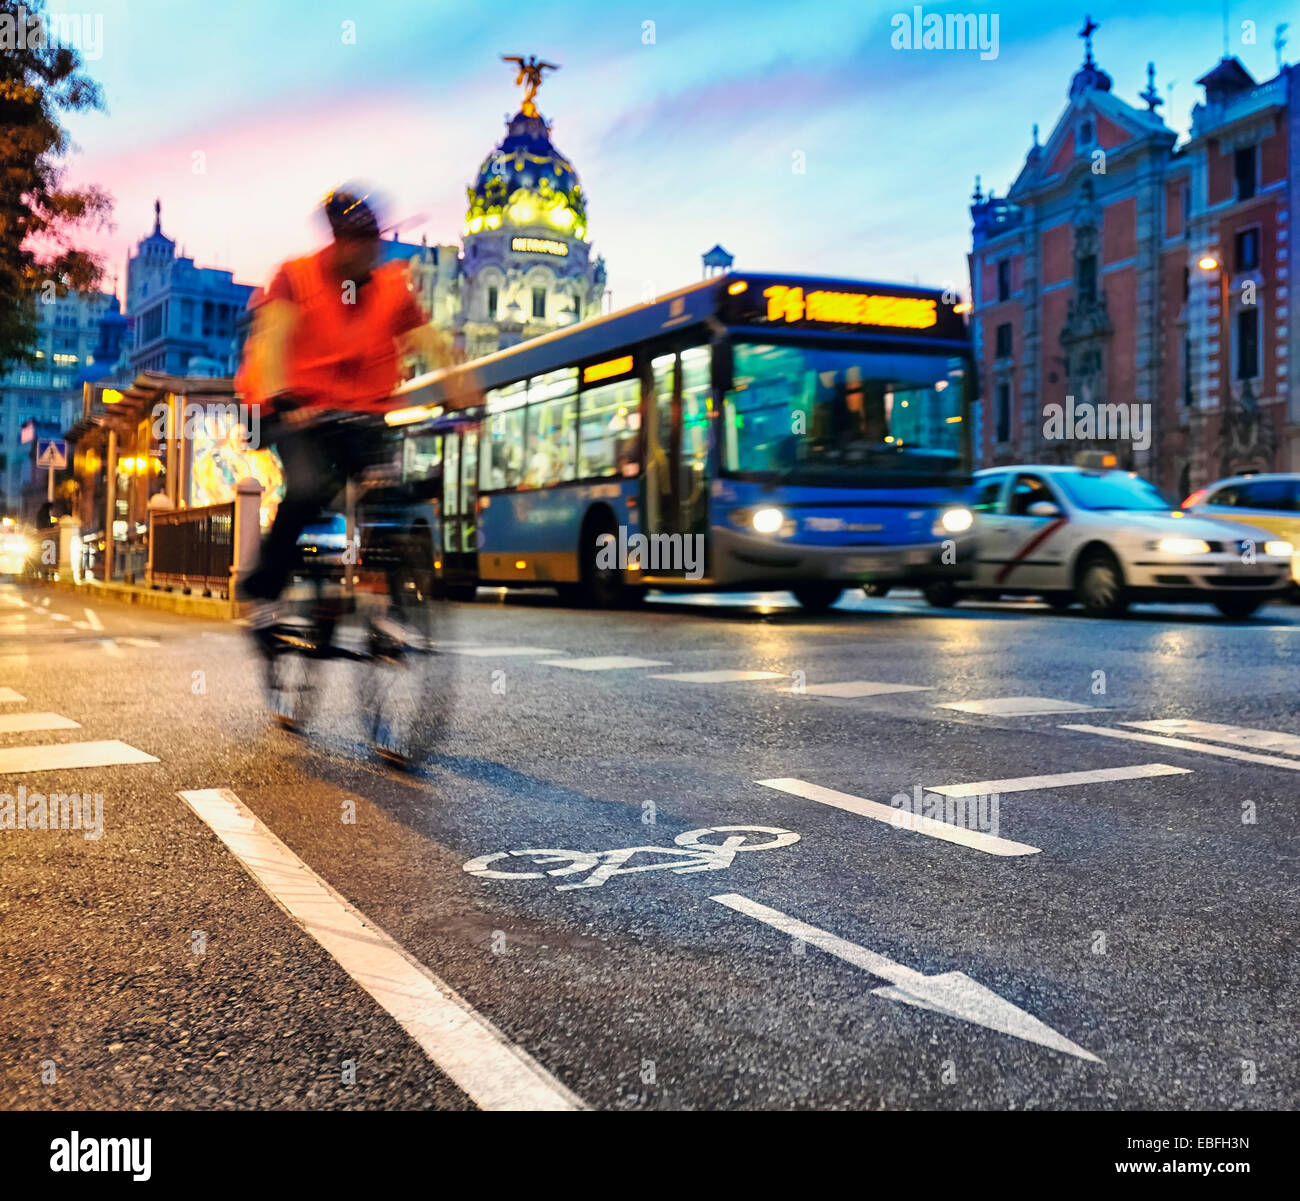 Cyclist at the cycle lane of Alcal‡ street with the Metropolis building at the background. Madrid, Spain. Stock Photo